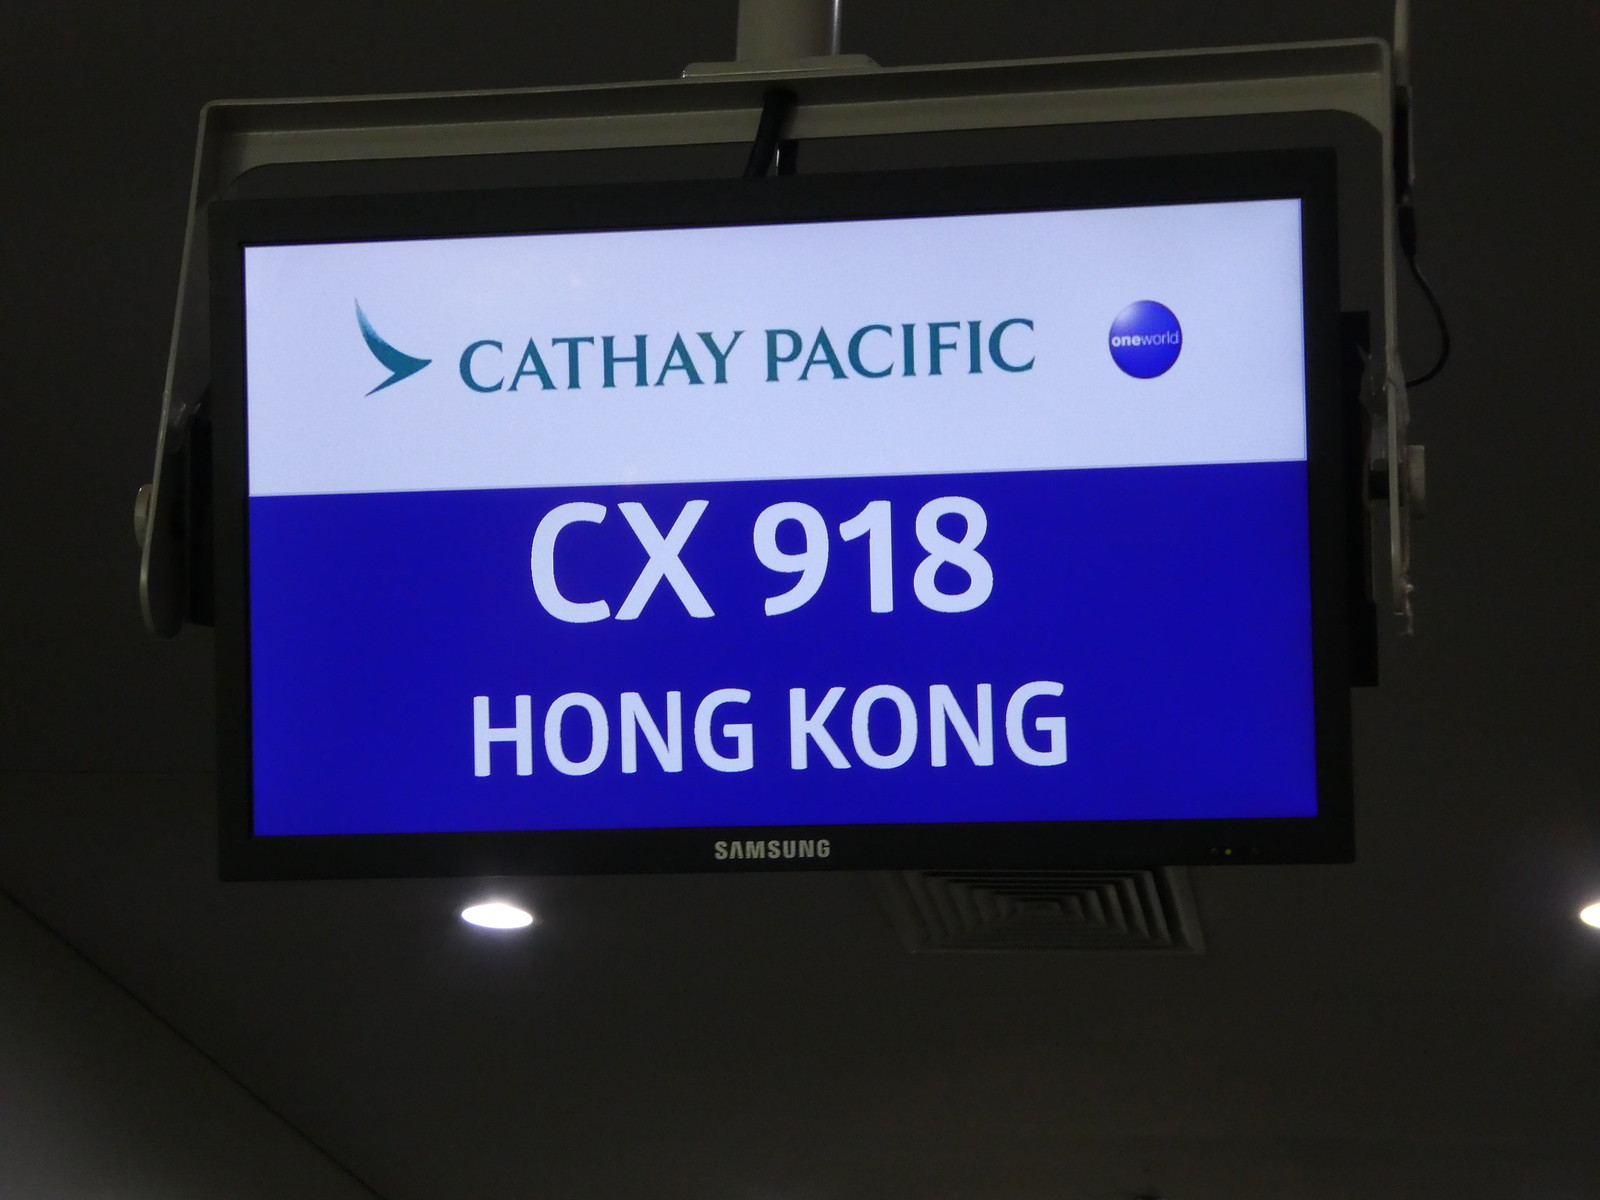 Cathay Pacific Gate at Manila airport